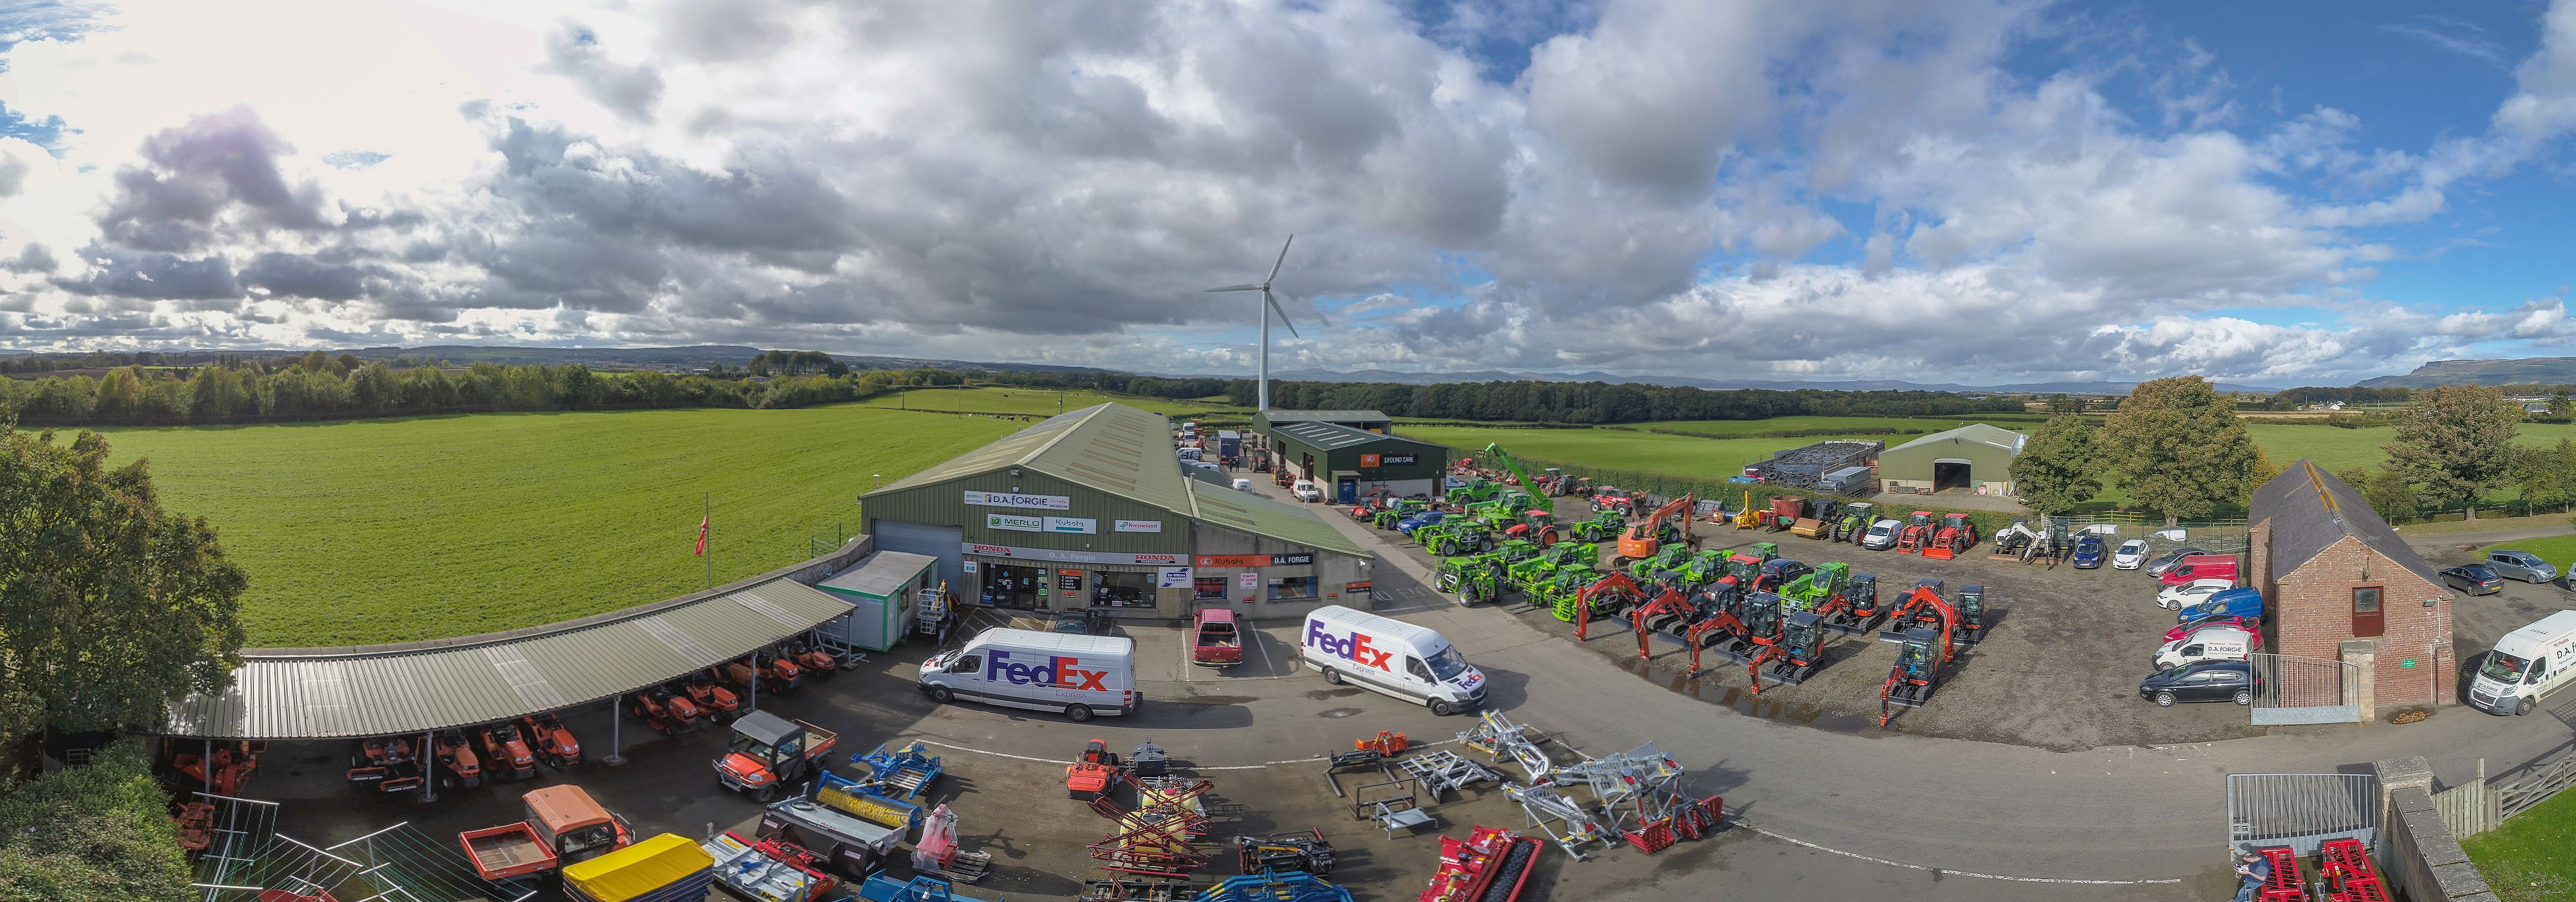 da-forgie-limavady-lisburn-ni-kubota-diggers-lawn-mowers-lawnmover-tractors-merlo-telehandlers-honda-kane-trailers-kverneland--mc-connel-ifor-williams-resize-z